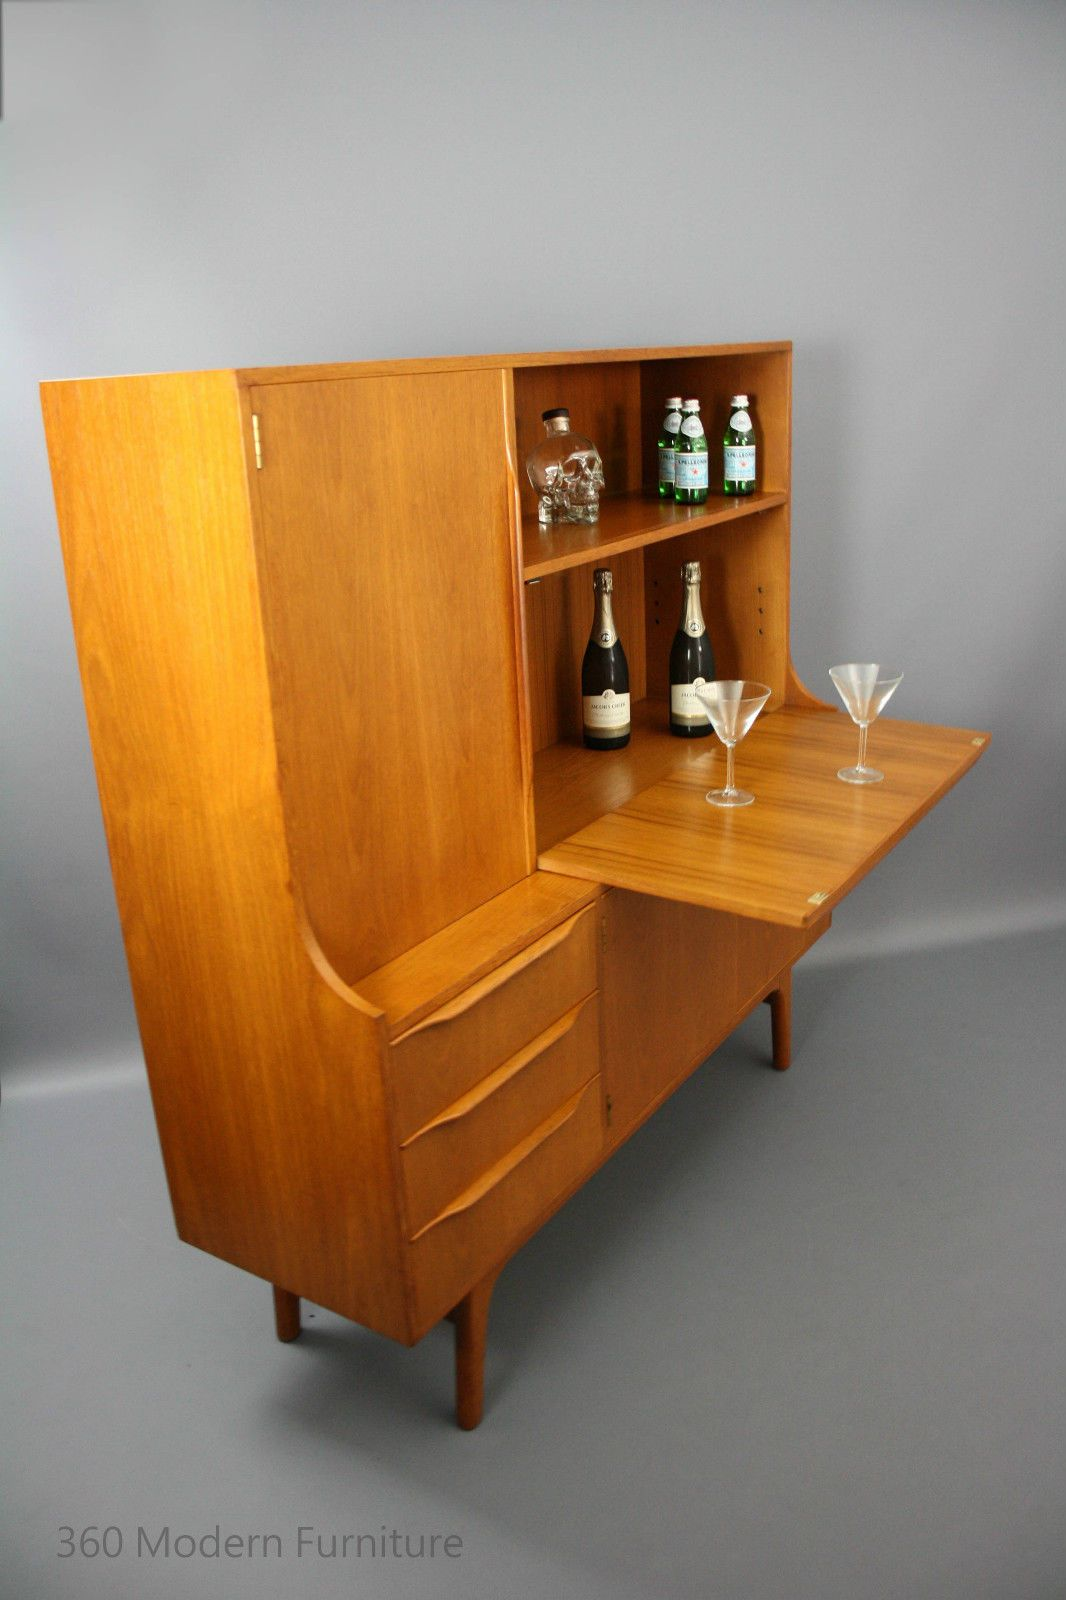 MID Century Noblett Sideboard Desk BAR Cabinet Shelves Vintage Retro Danish  Parker ERA In VIC 360